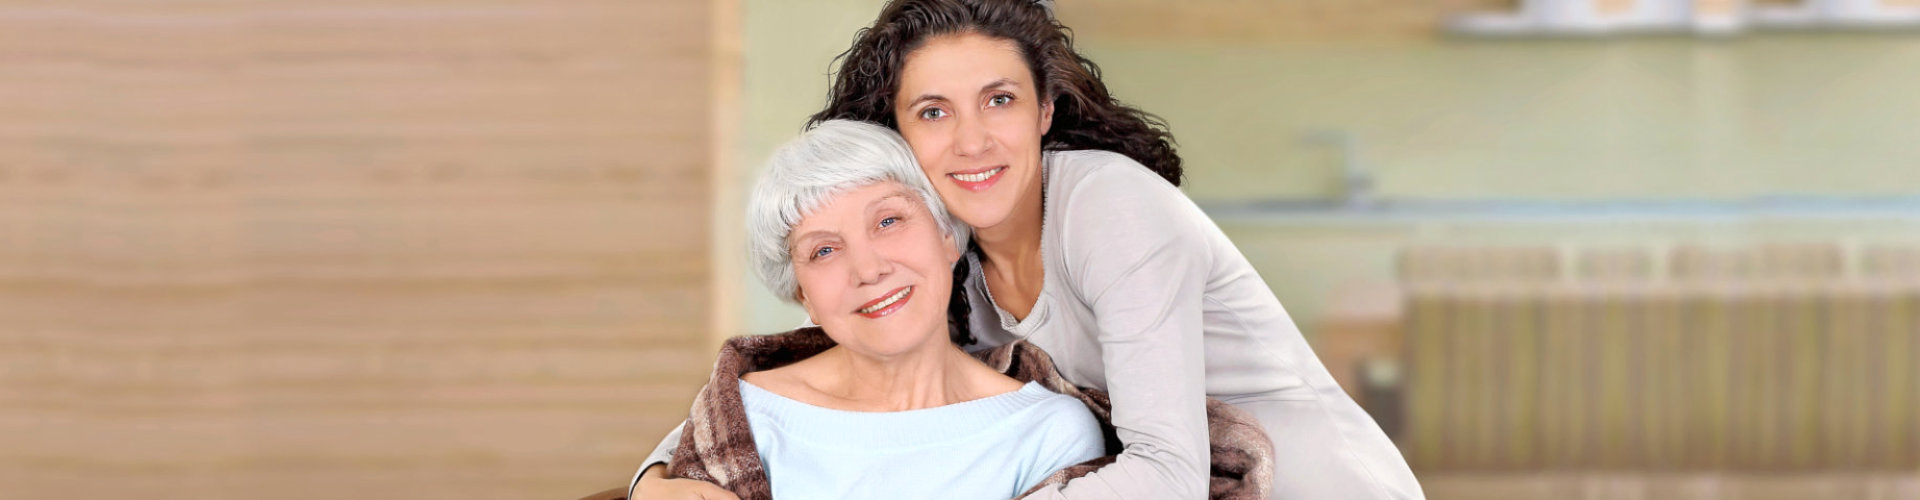 caregiver and senior woman are smiling while hugging